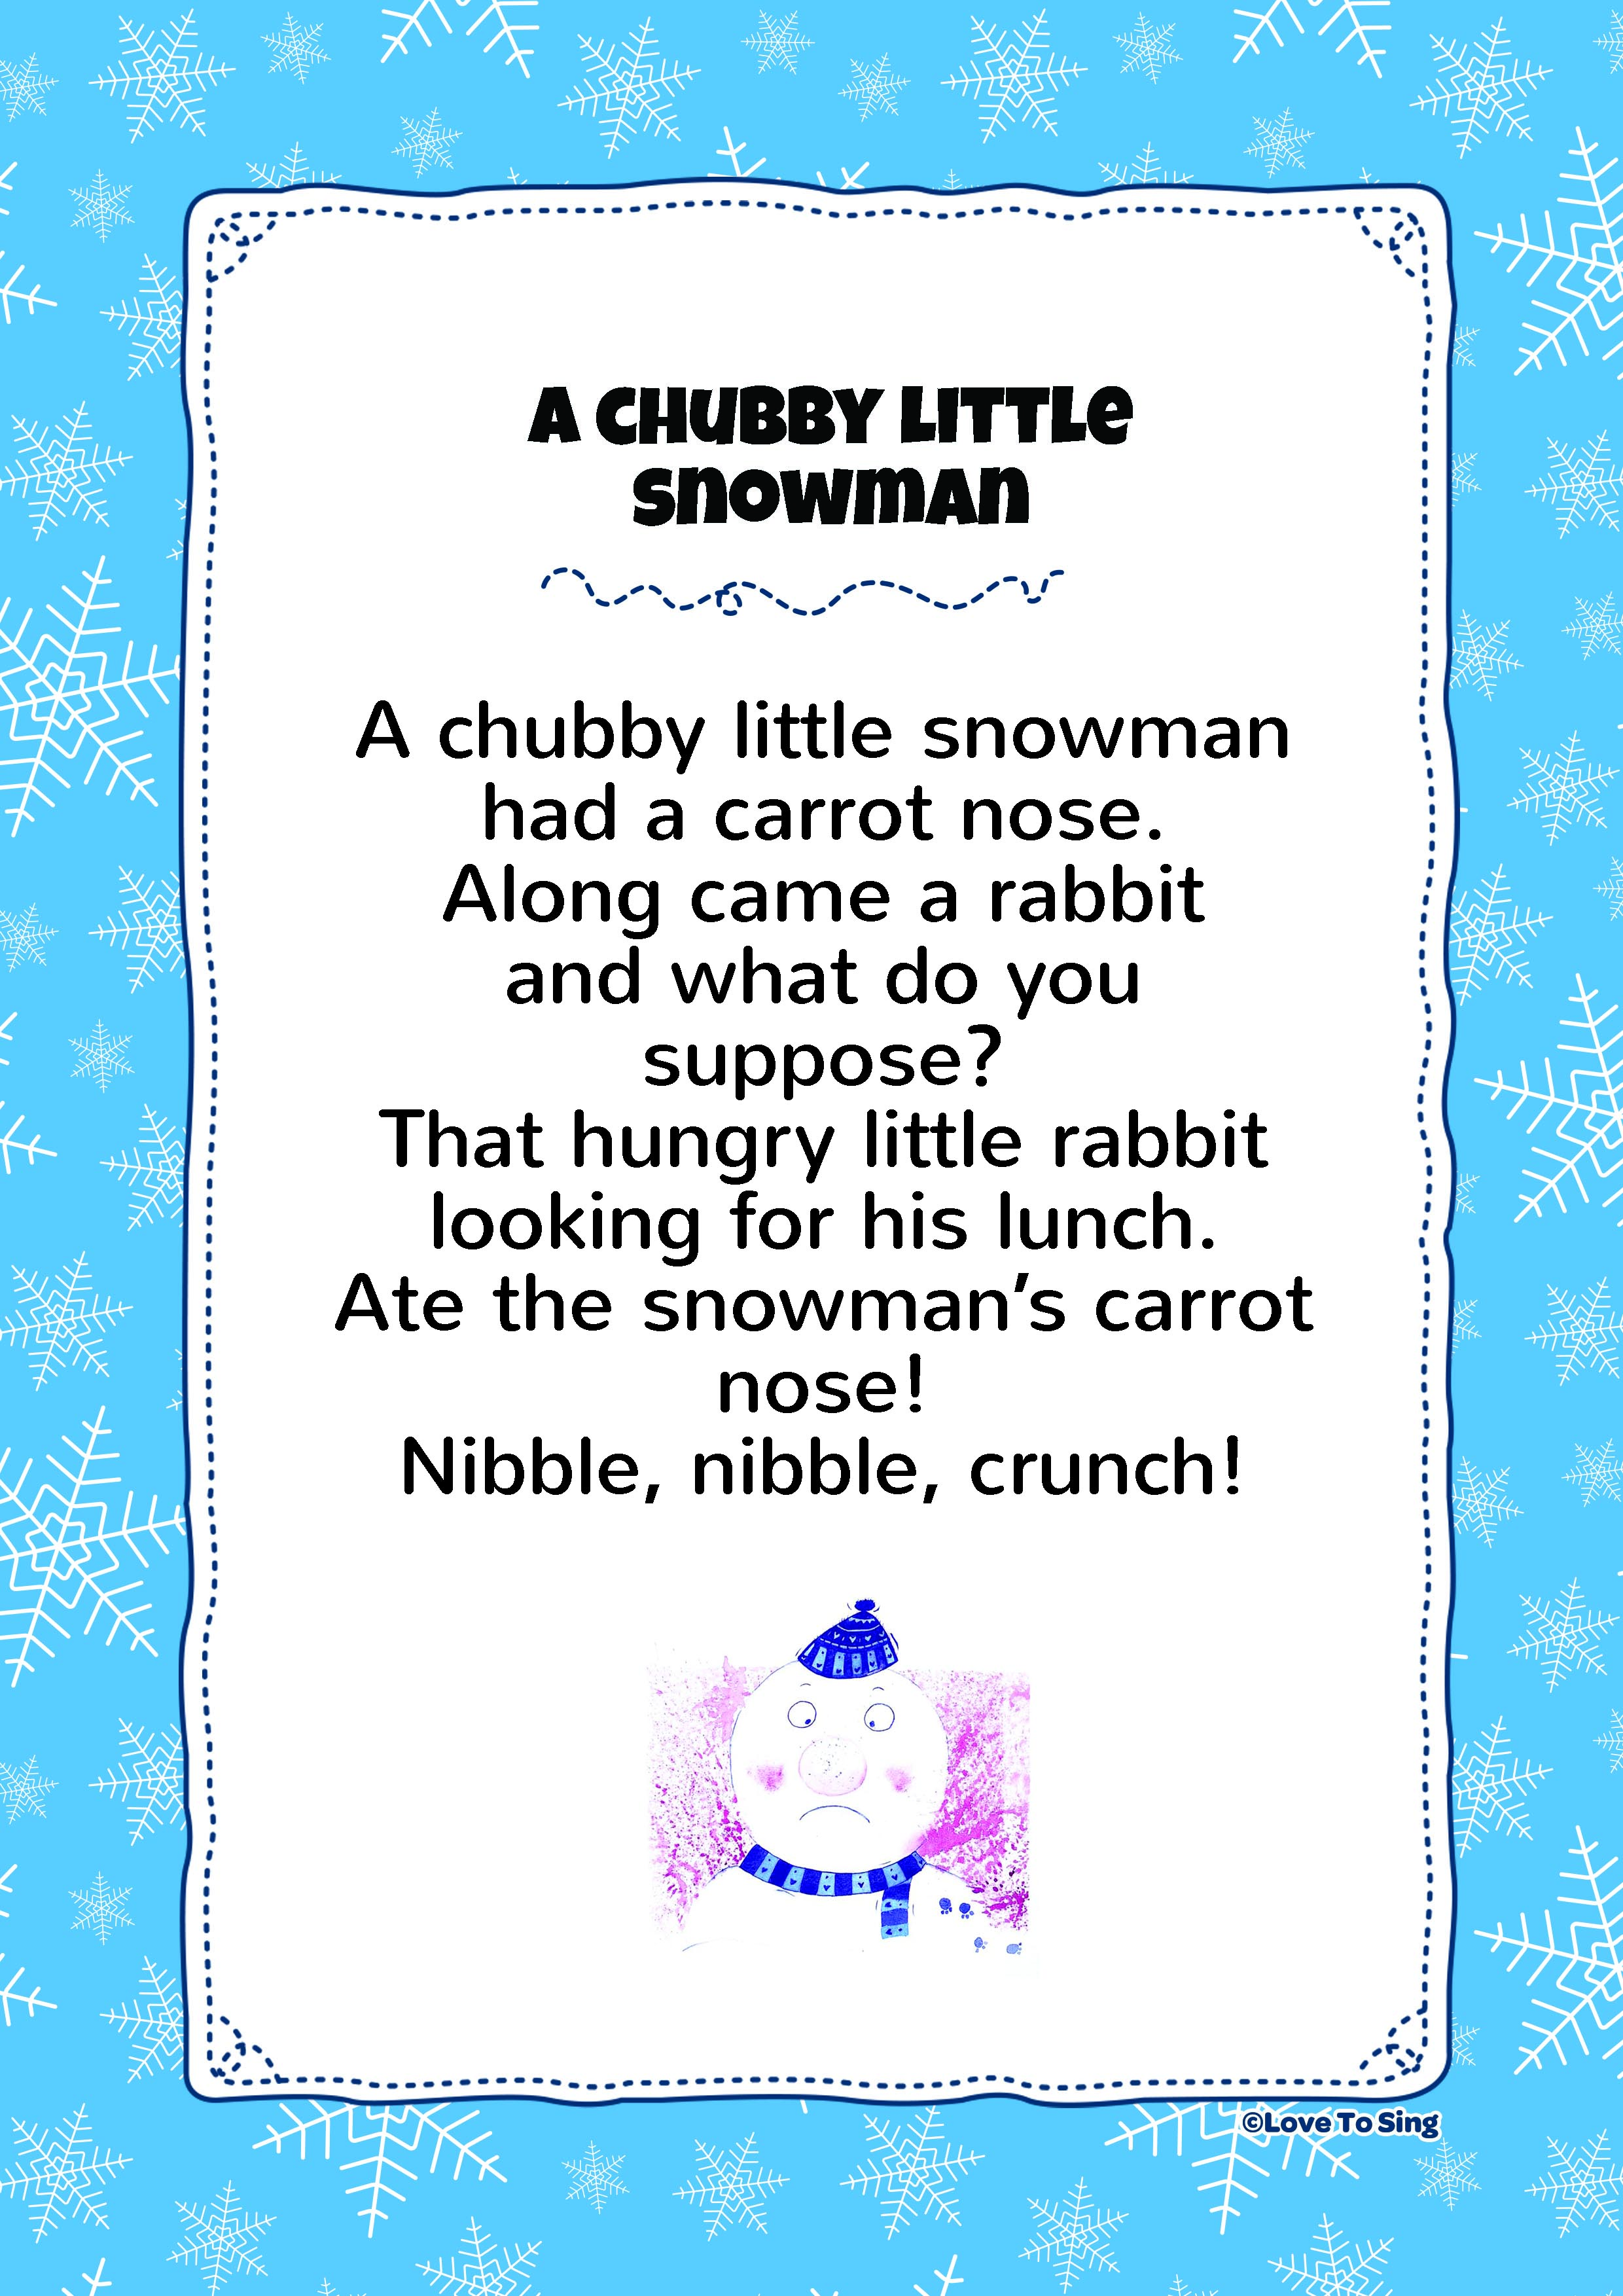 photograph regarding Chubby Little Snowman Poem Printable called A Over weight Tiny Snowman Young children Video clip Tune with Totally free Lyrics